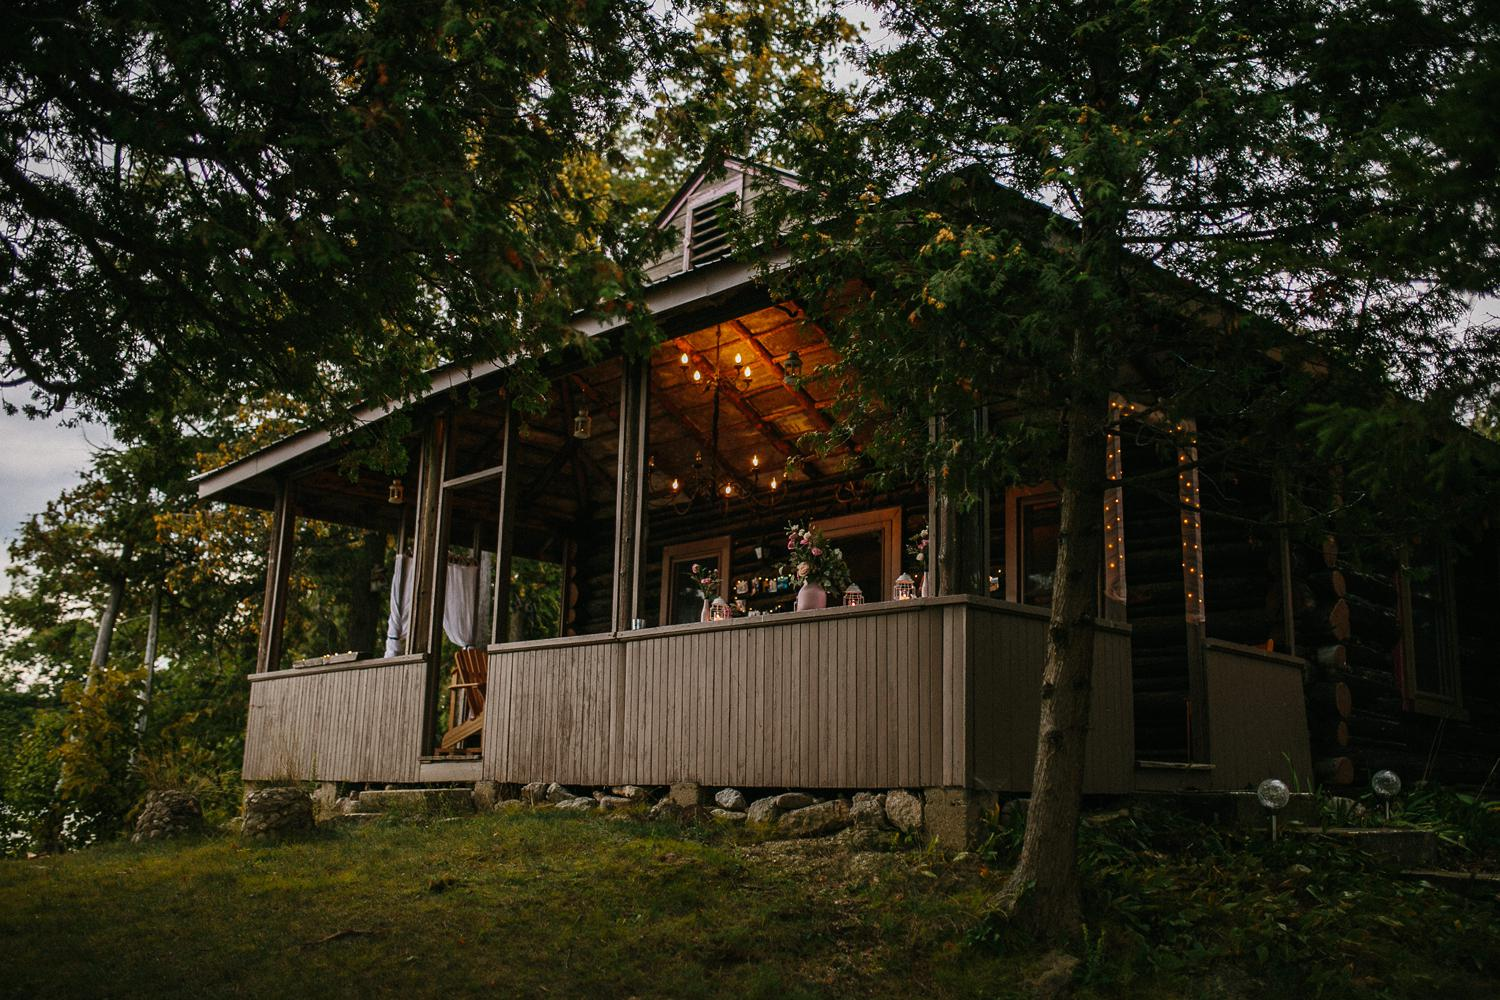 kerry ford photography - small intimate backyard rideau lake island wedding perth ontario-103.jpg